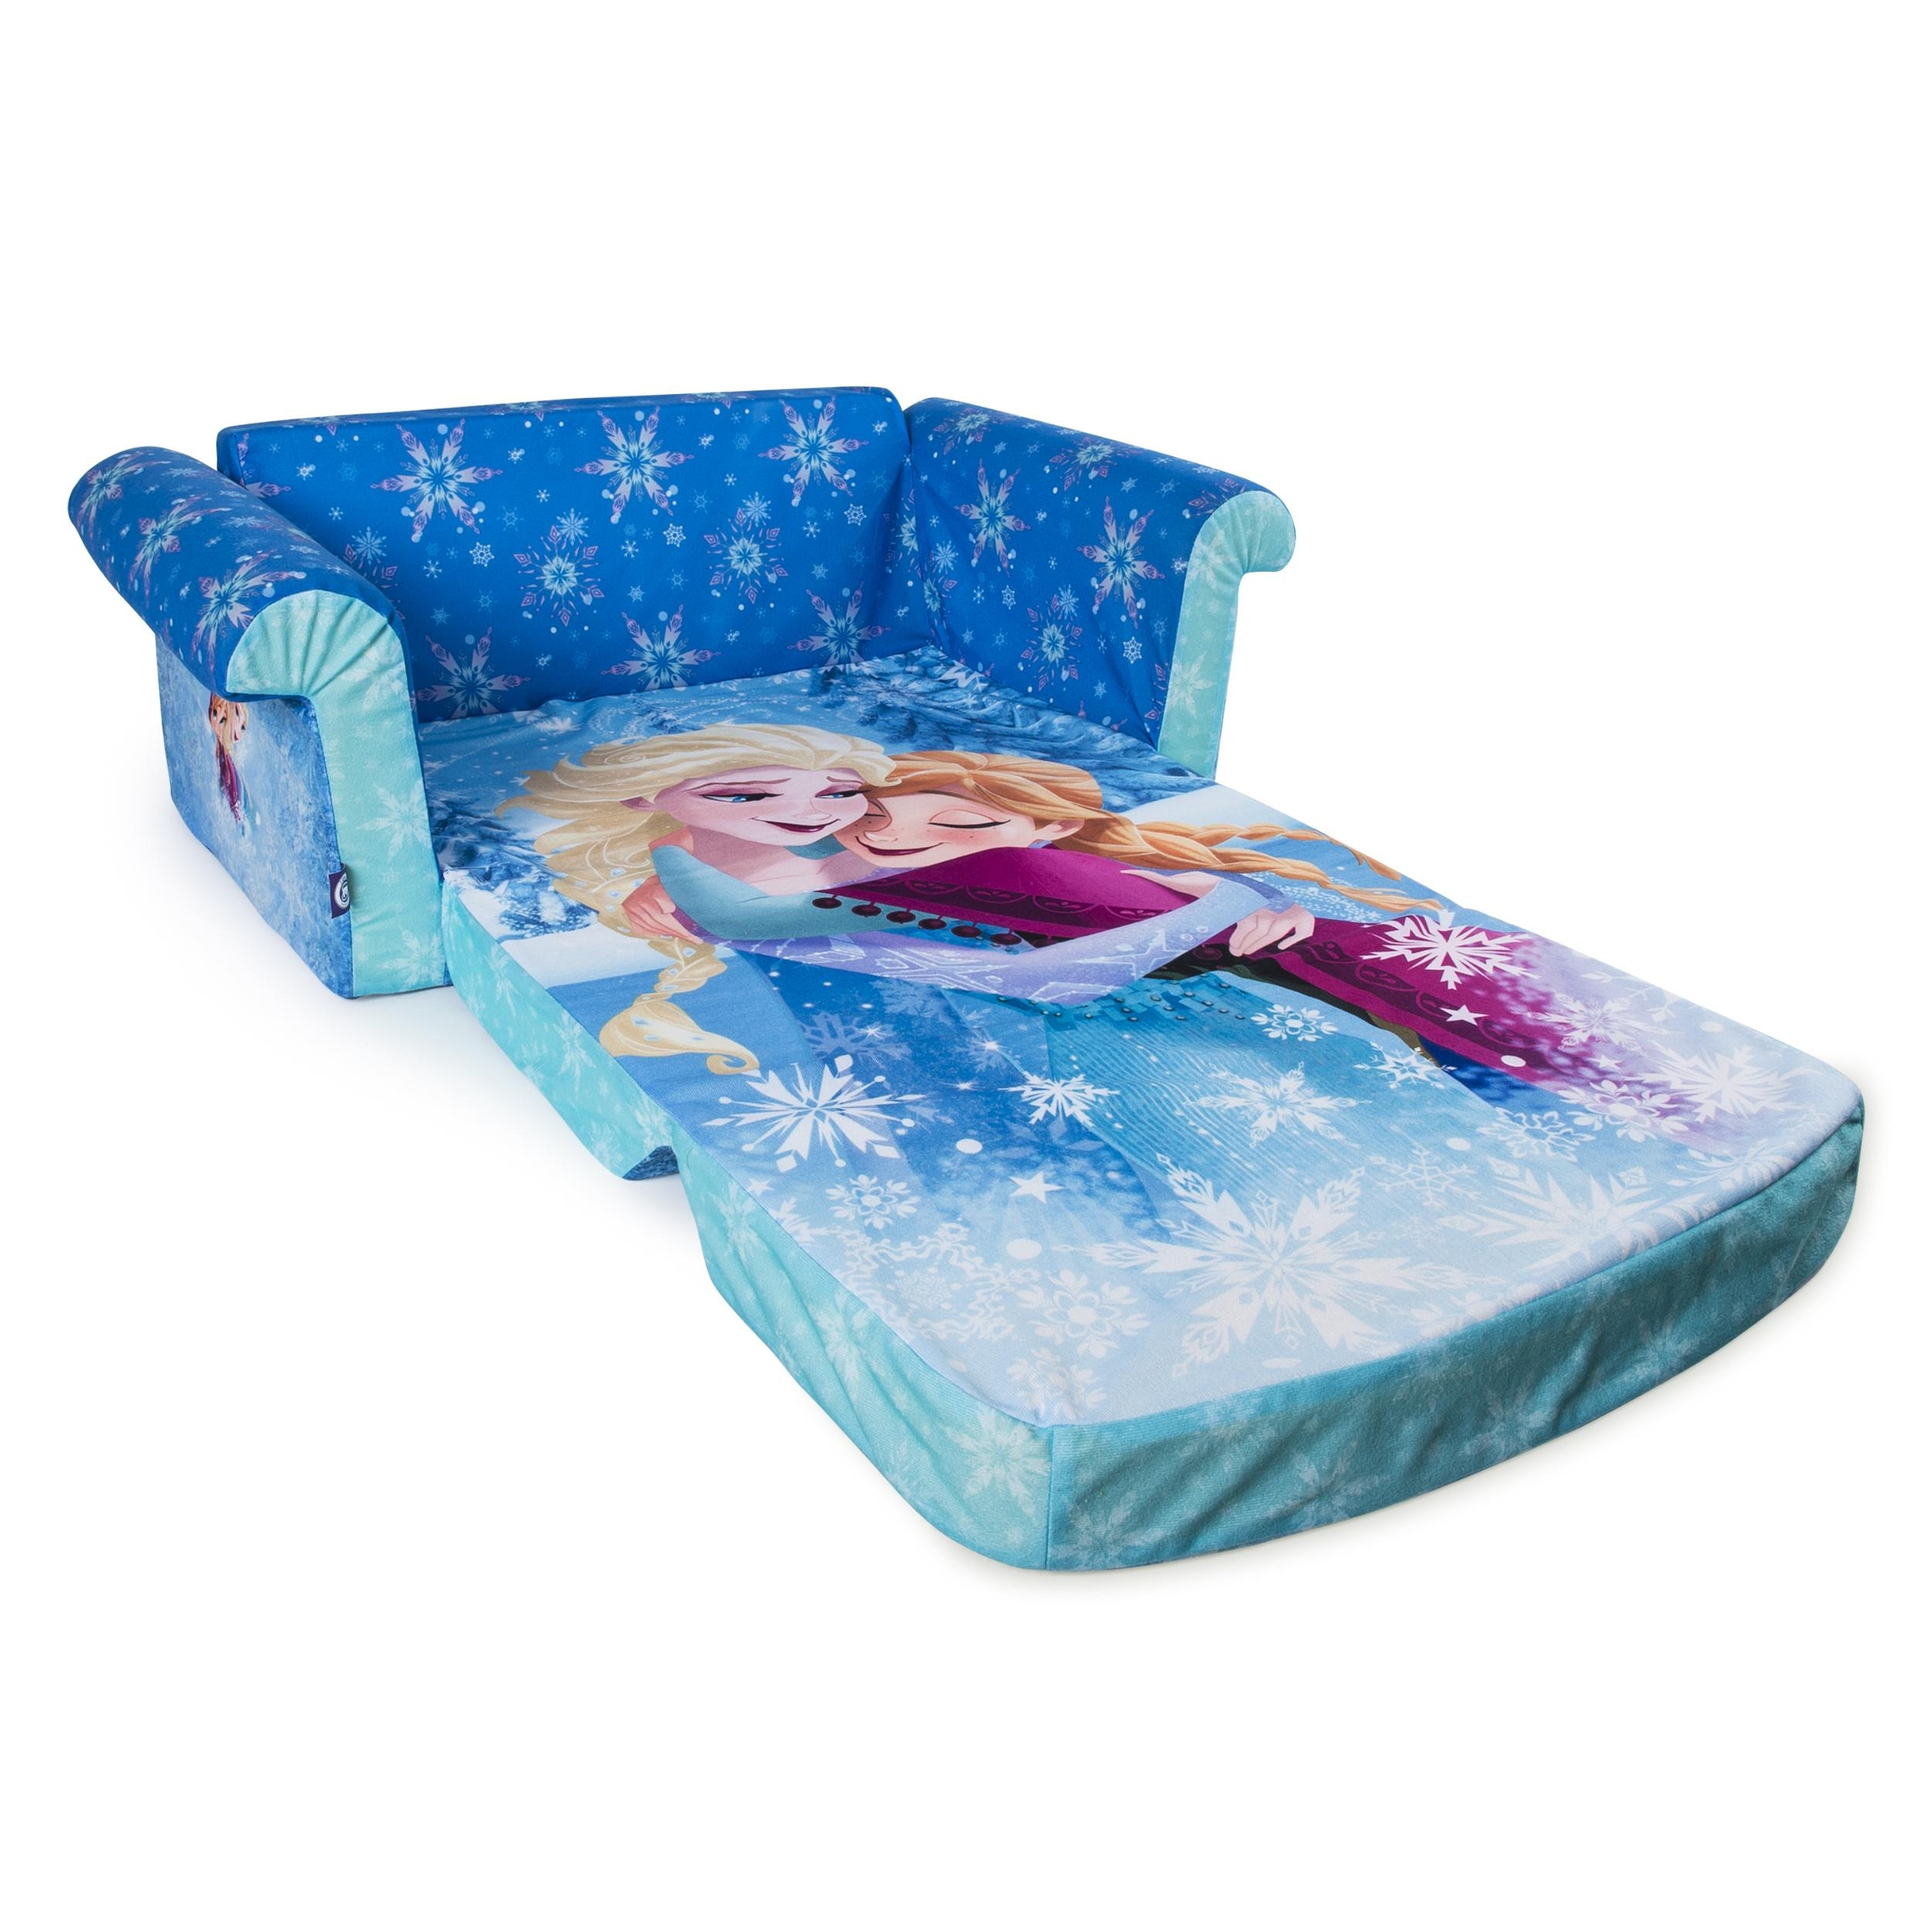 Marshmallow Furniture, Children's 2 In 1 Flip Open Foam Sofa Inside Disney Sofa Chairs (View 12 of 20)